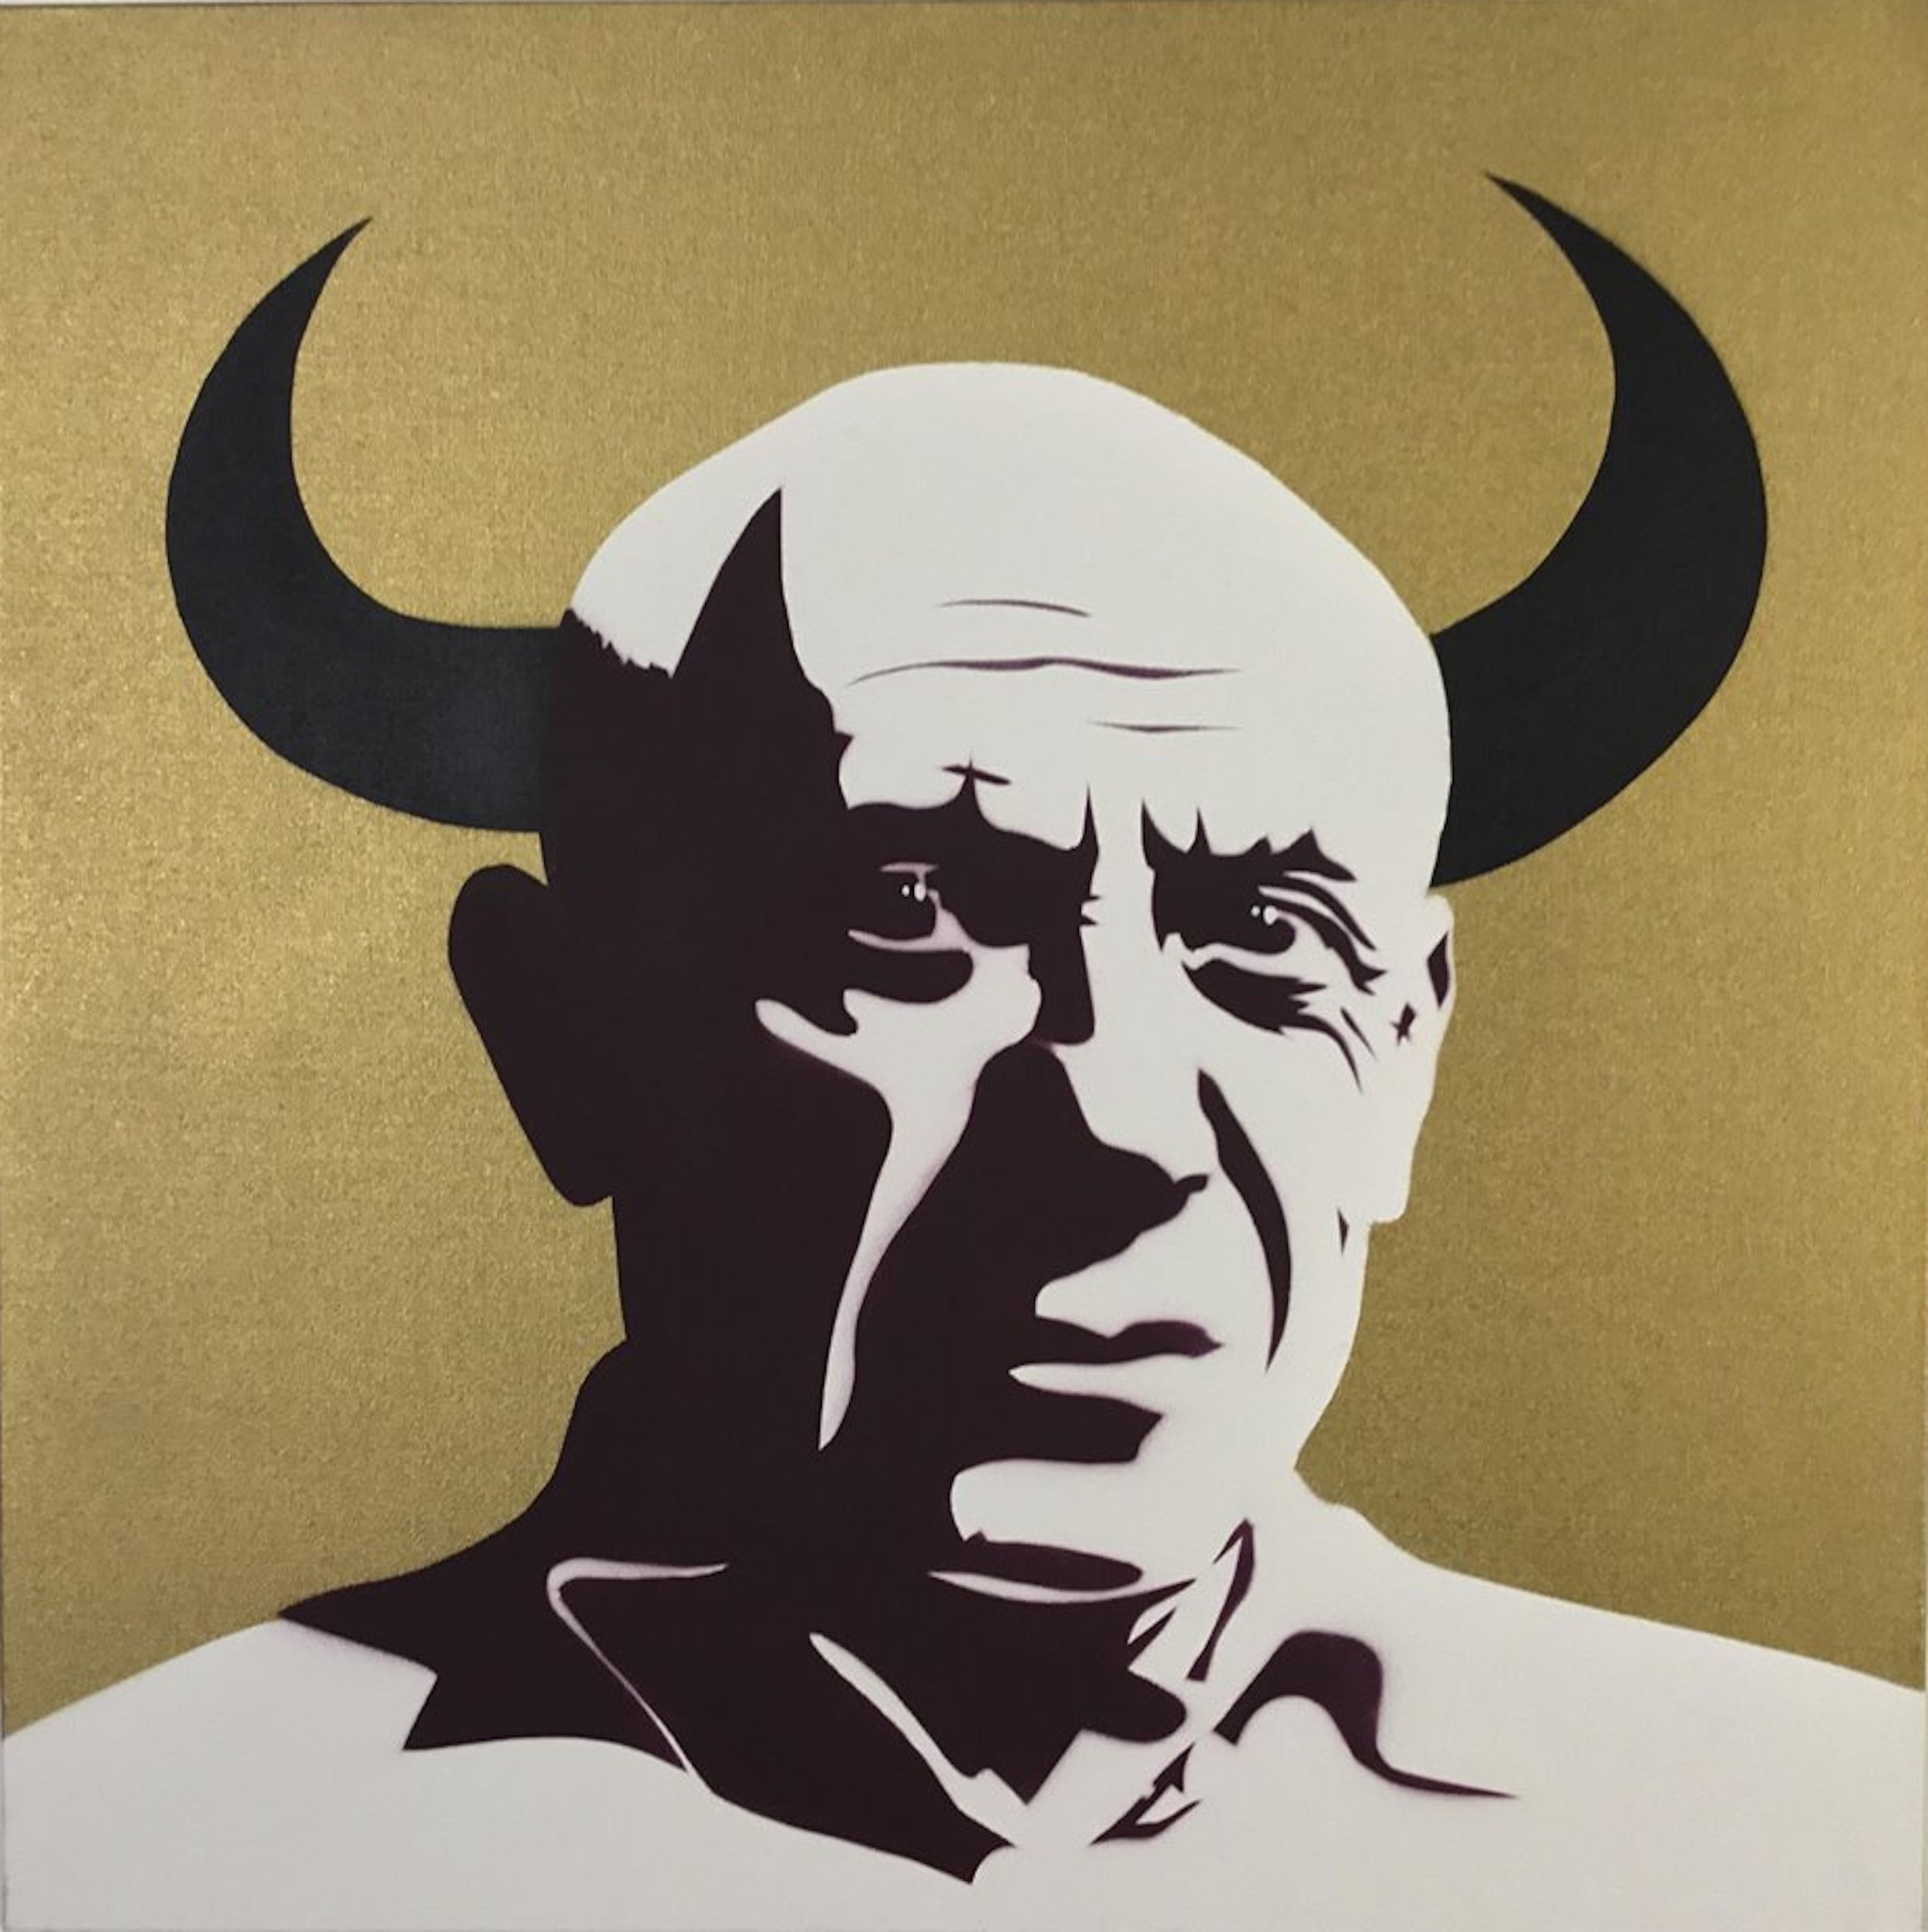 Cindy Lisica Gallery - Charles Uzzell Edwards AKA PURE EVIL - _Picasso - El Toro_ - 30 x 30 inches - stencil spray paint on canvas - 2018 - $2000.jpg